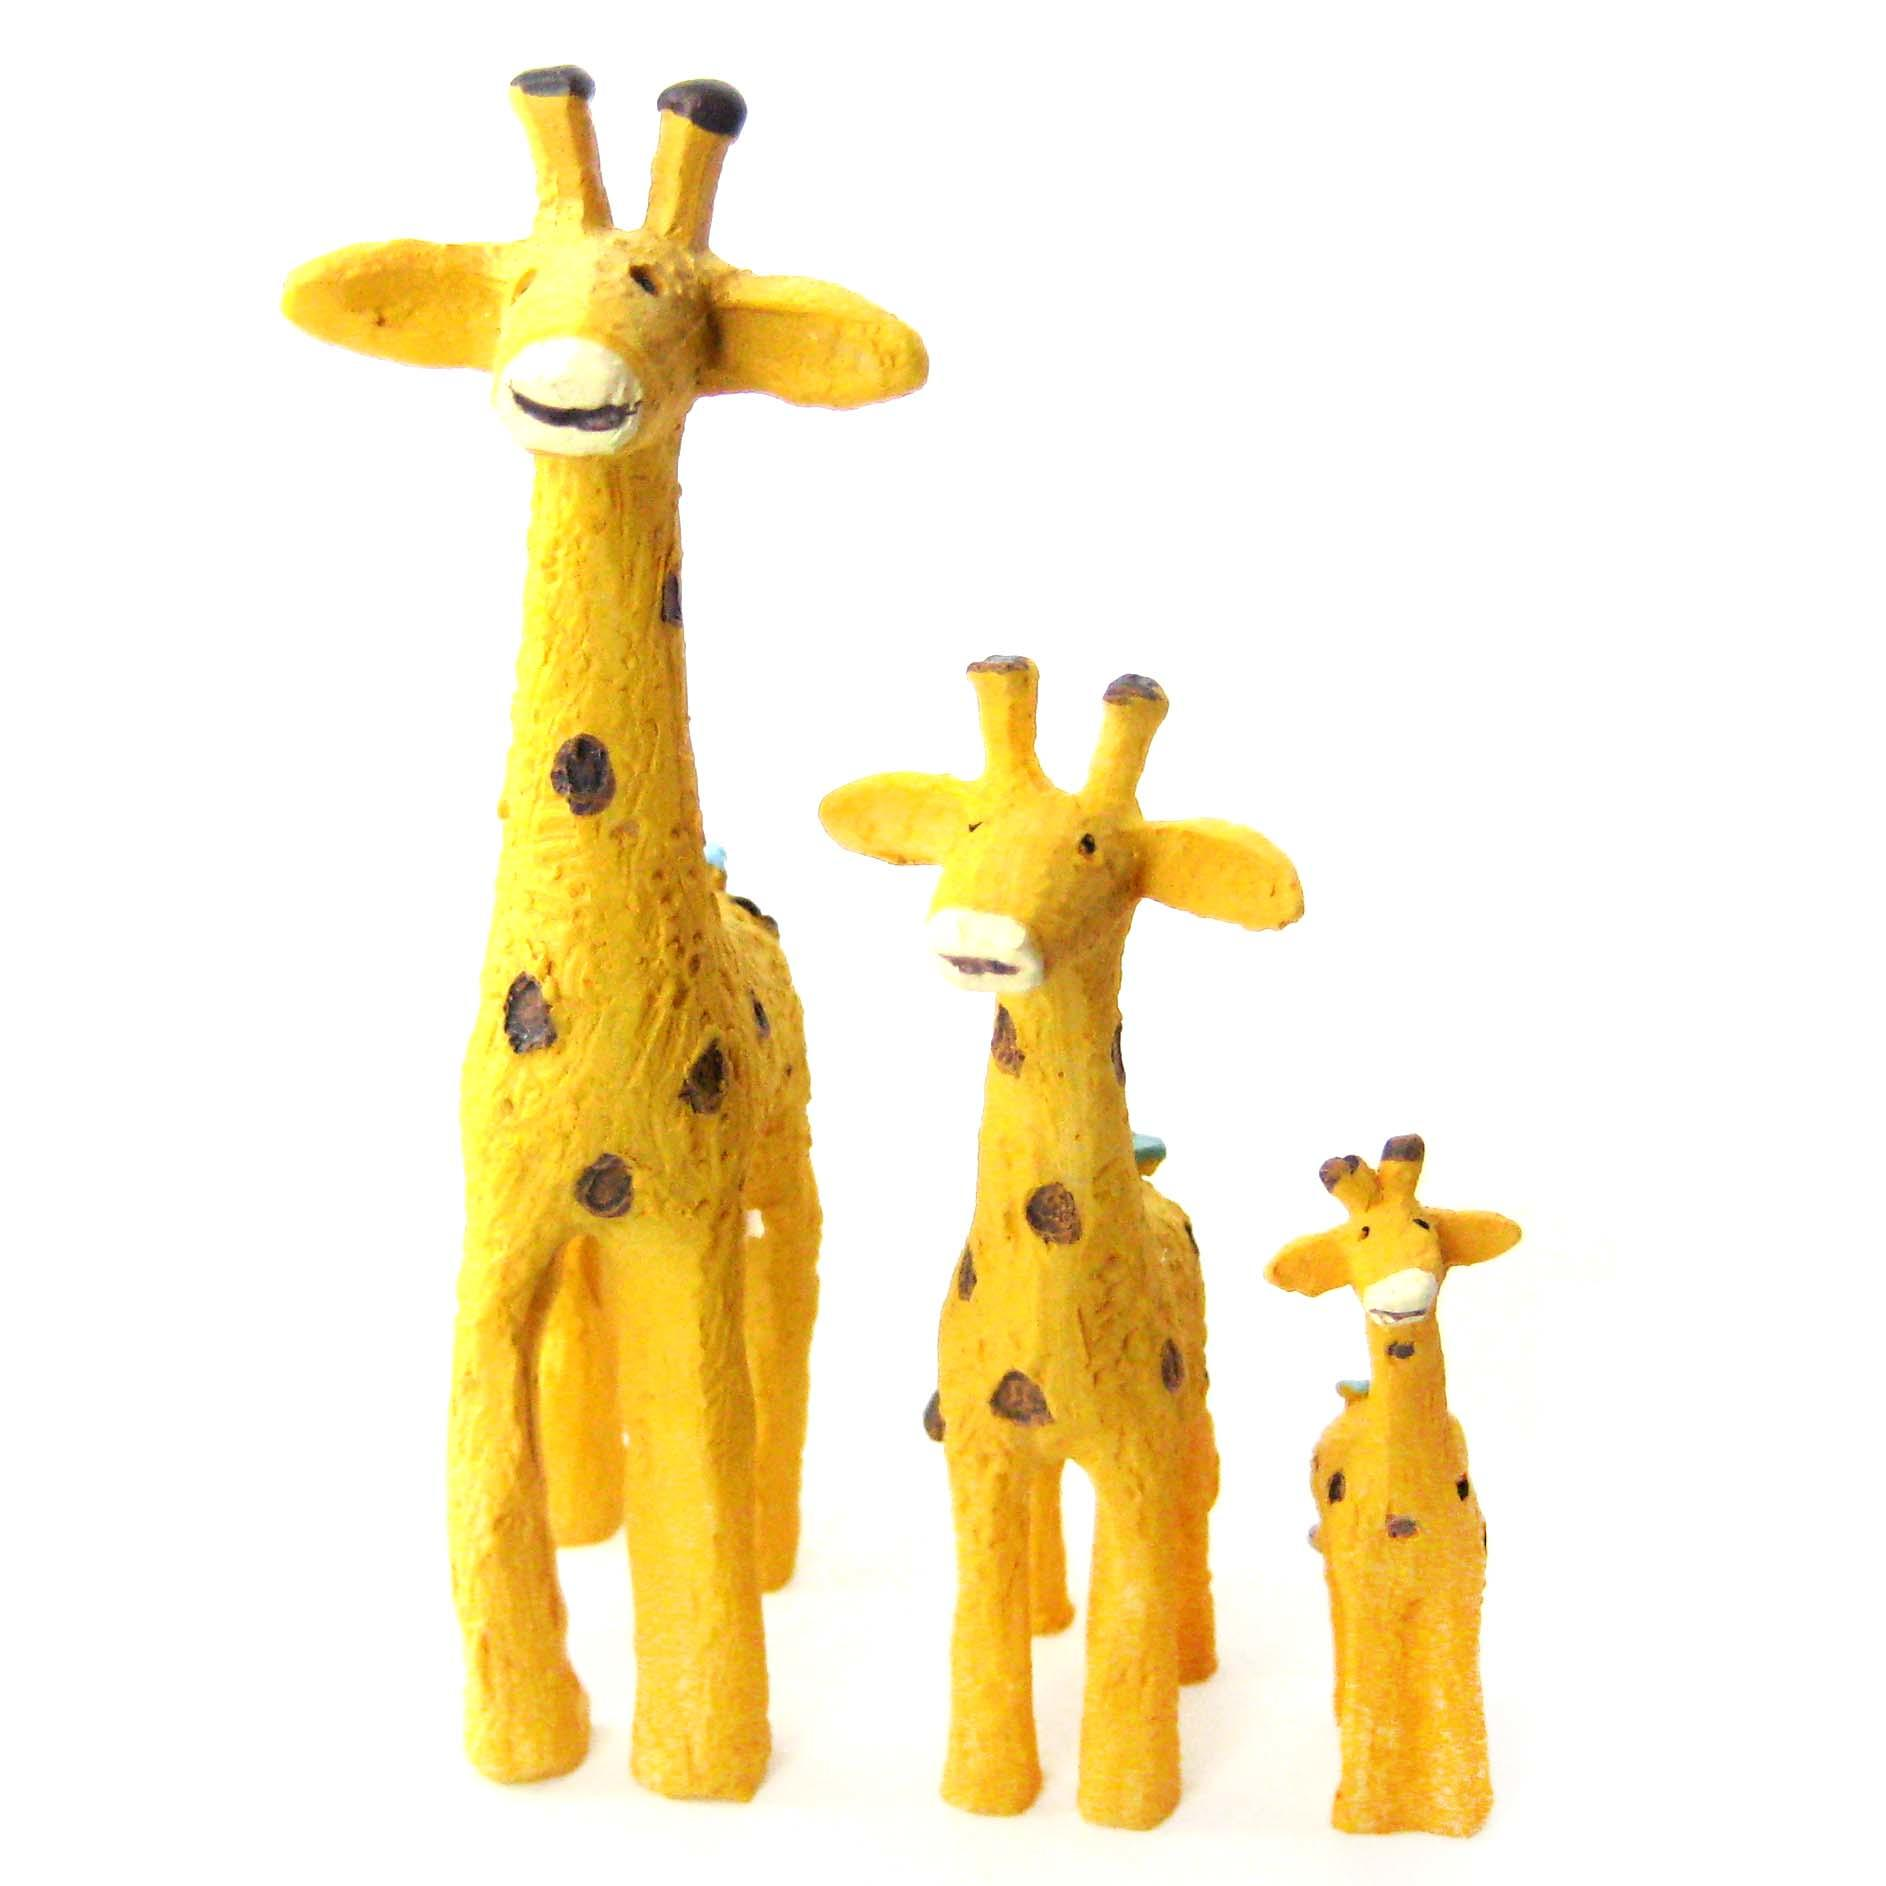 Animal Figurines Home Decor Giraffe Cute Animal Hand Painted Figurine From Dotoly The